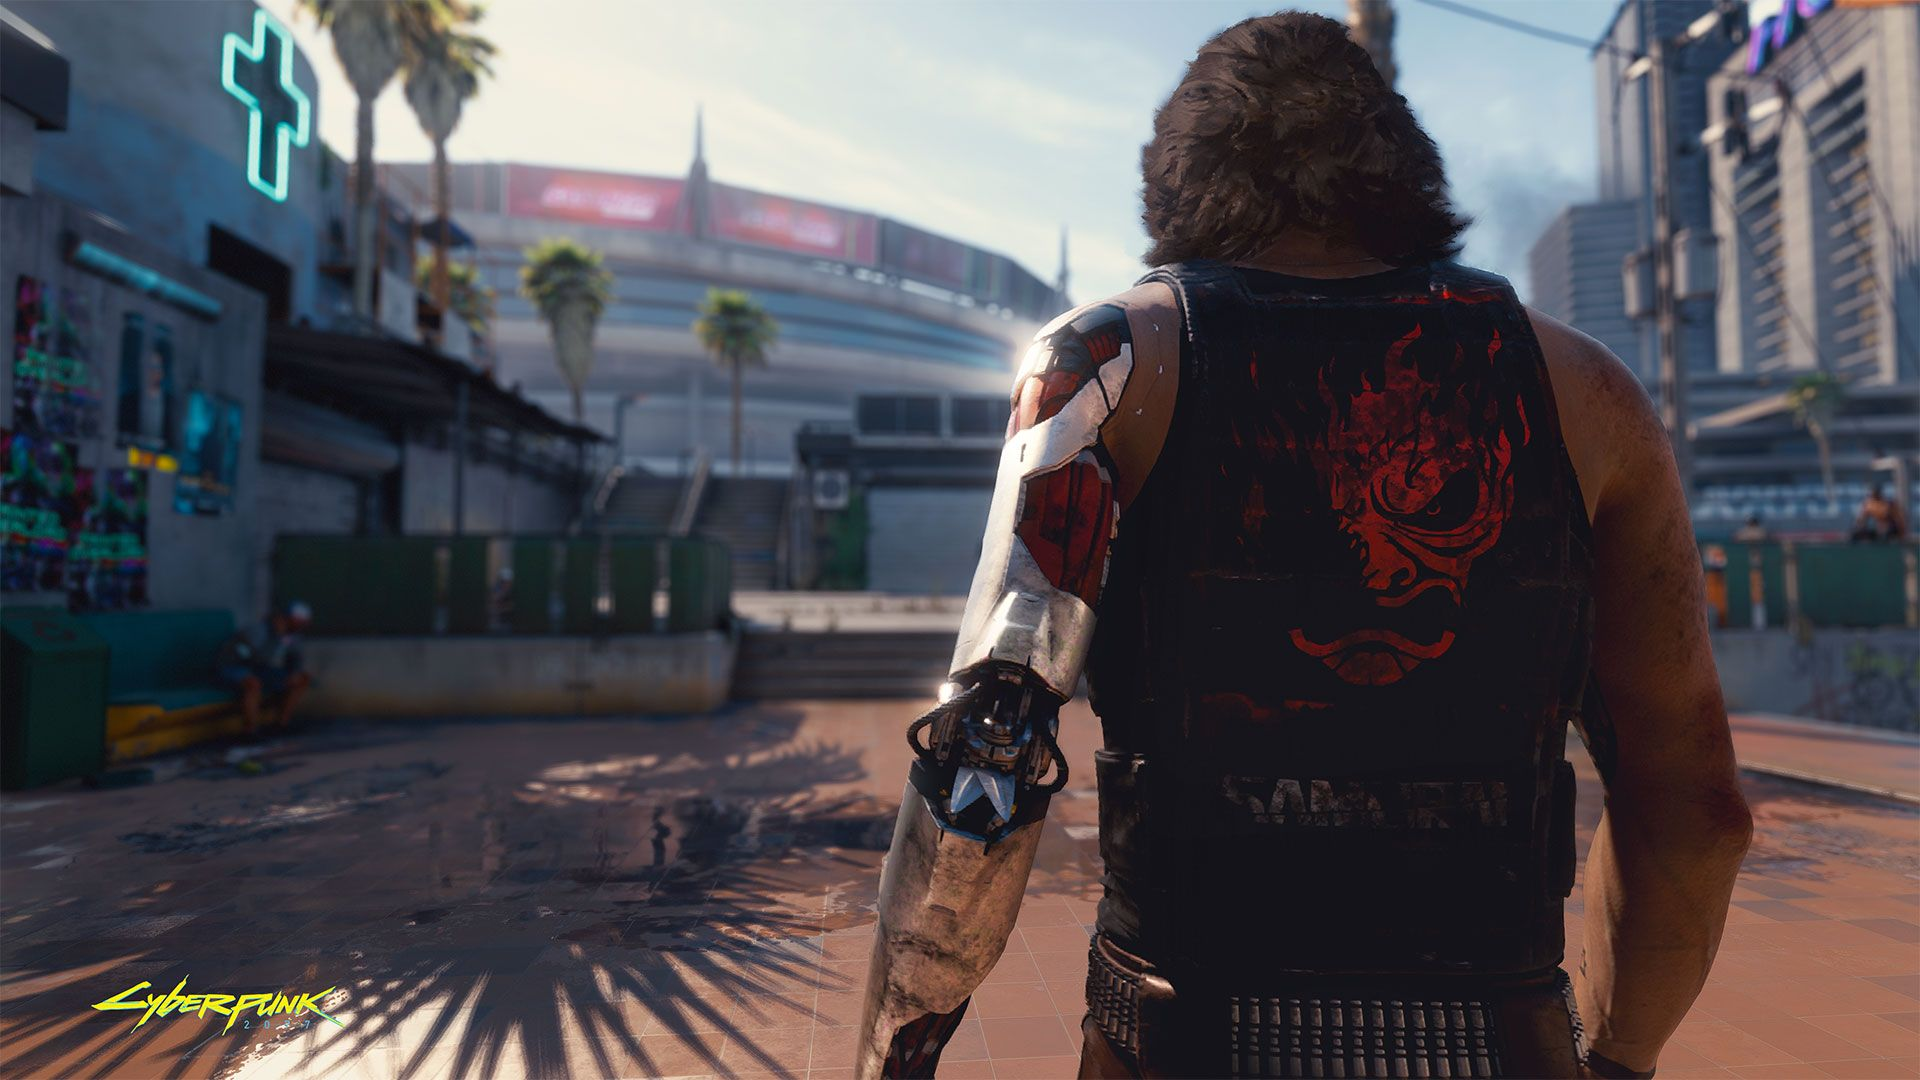 What's The Deal With Cyberpunk 2077? | TheGamer